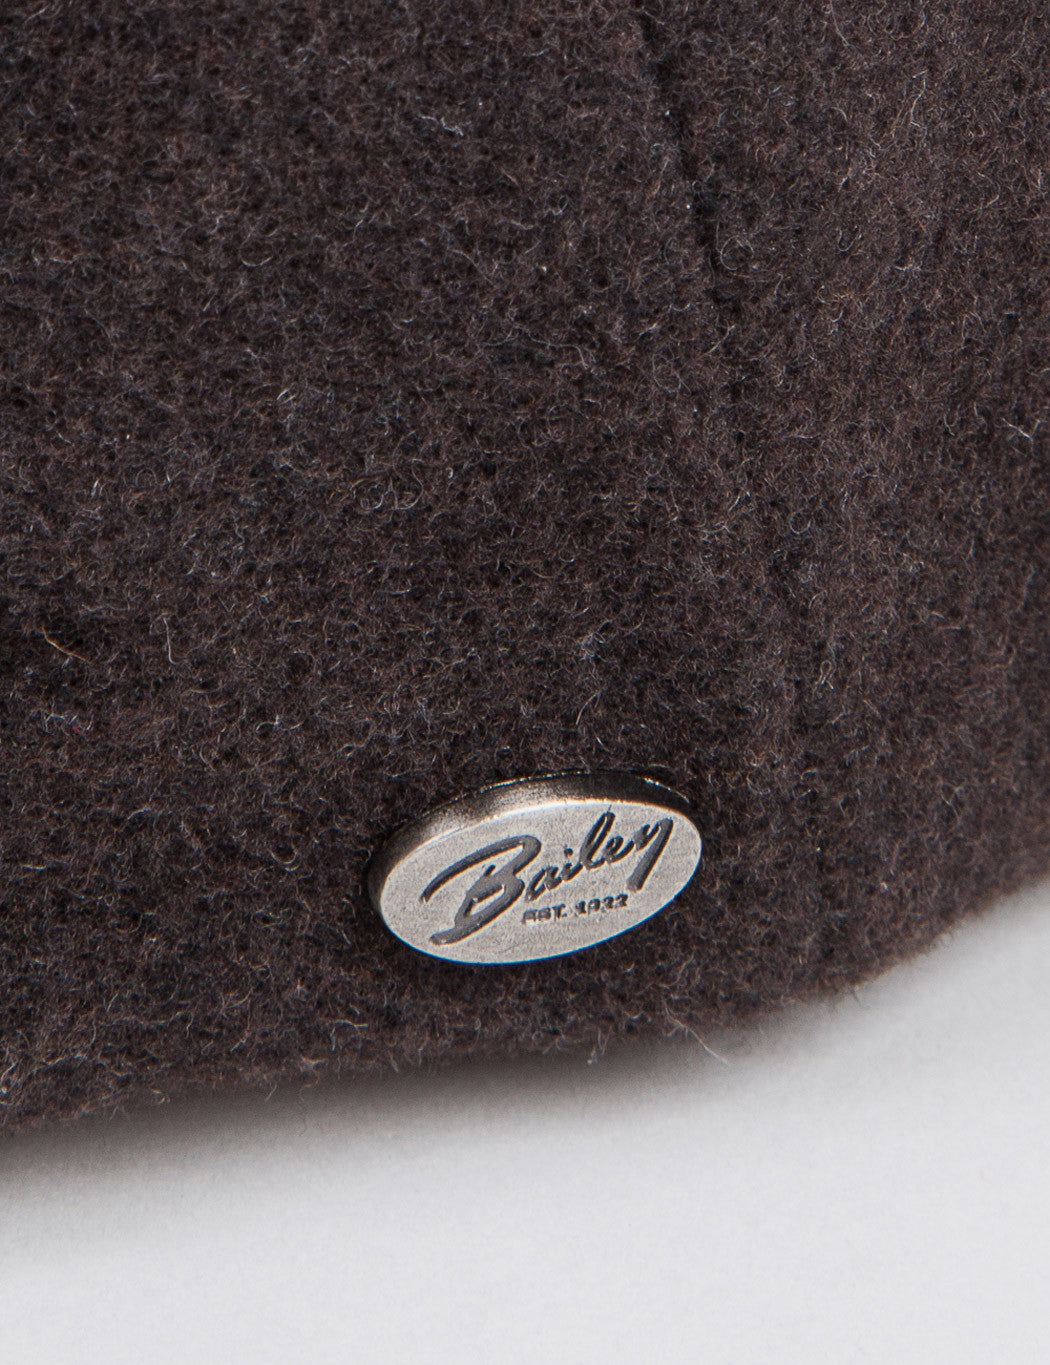 Bailey Galvin Wool Newsboy Cap - Brown